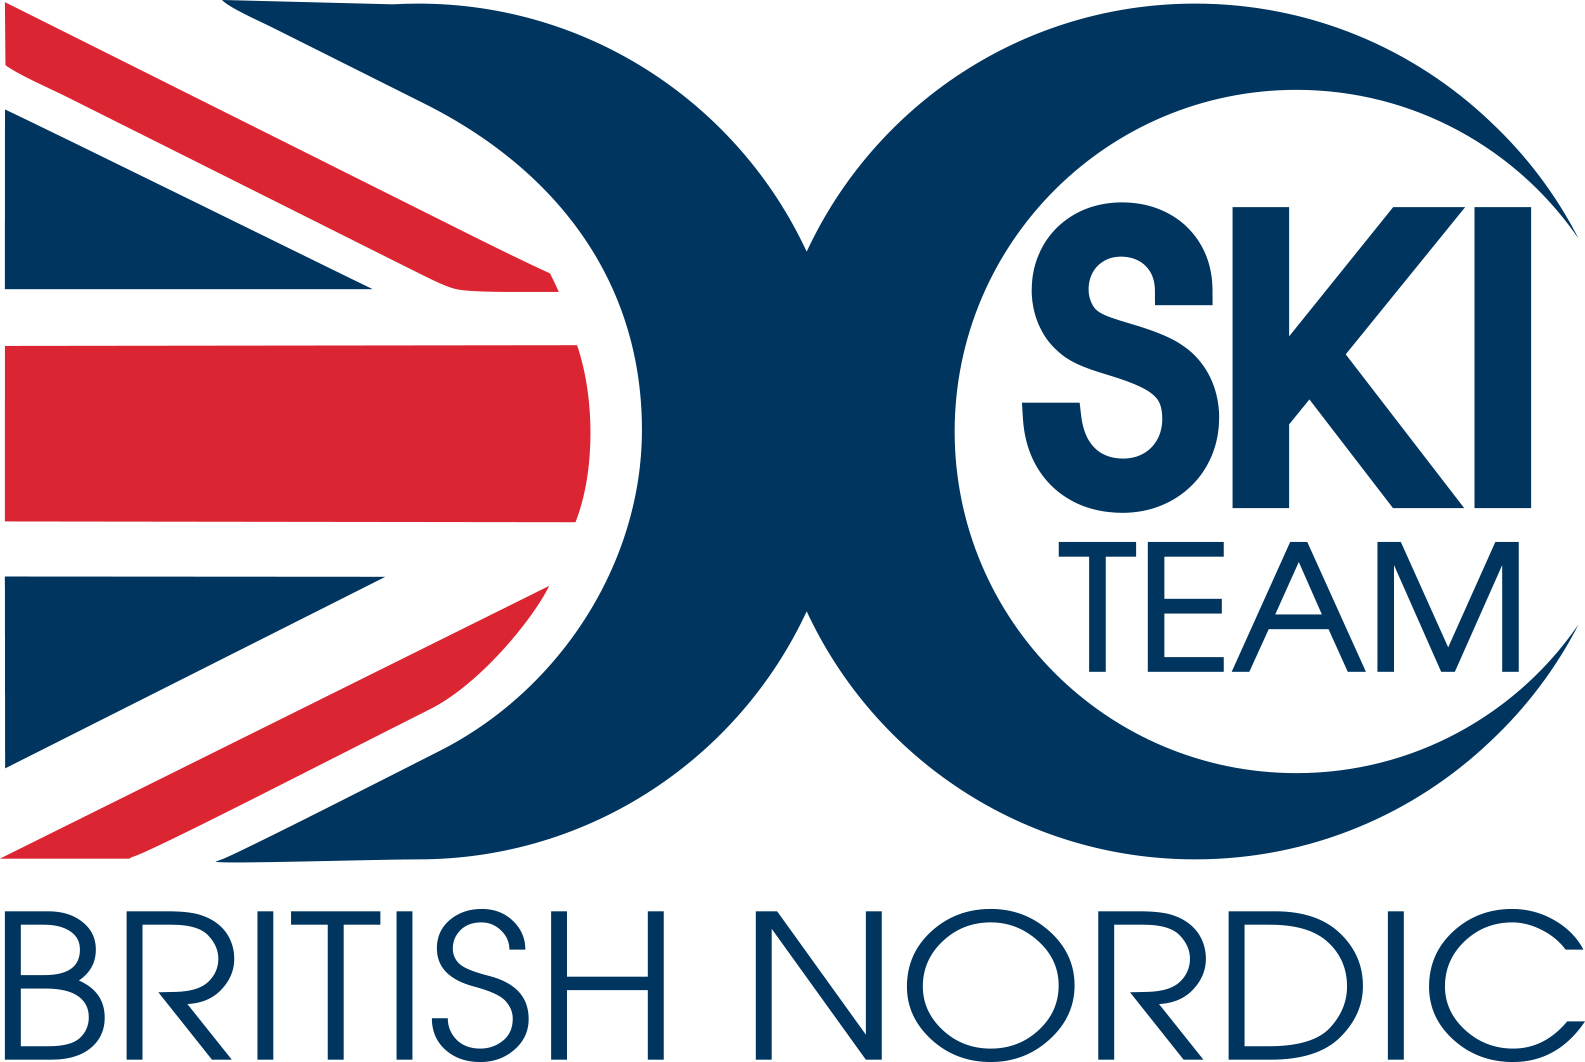 British Nordic Ski Team Logo